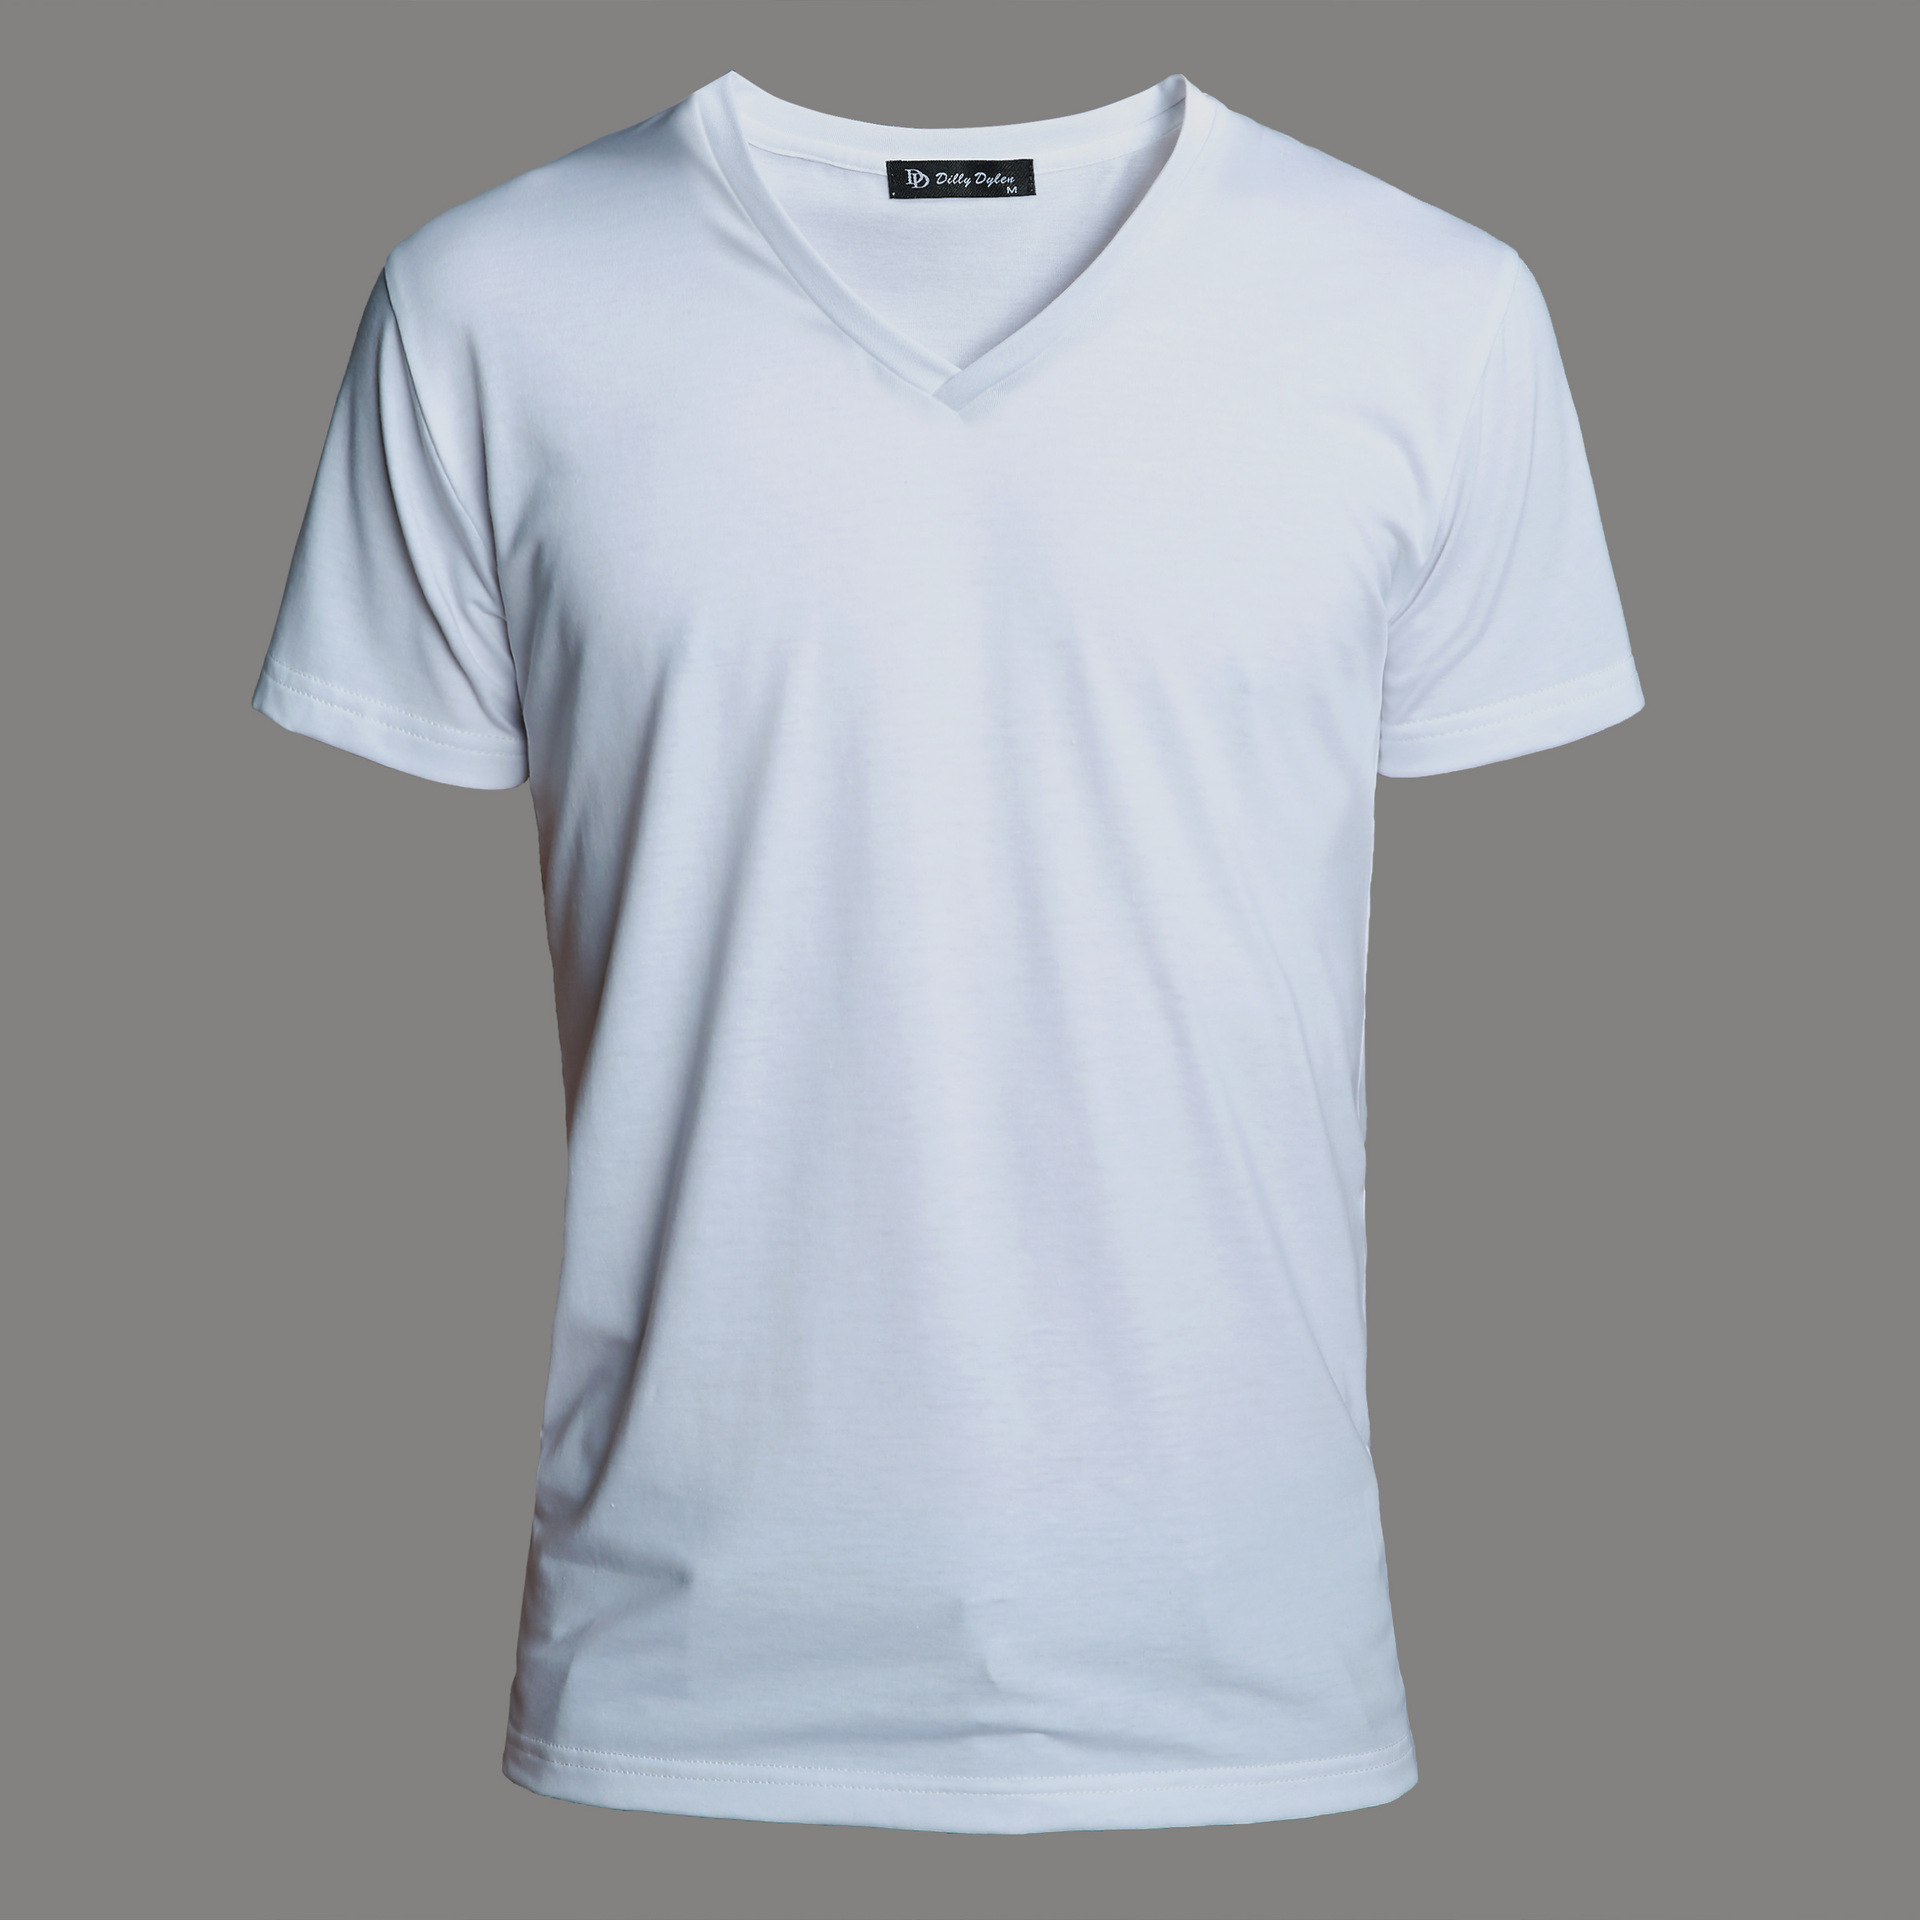 dry fit sport shirt clothing wholesale t shirt unisex OEM